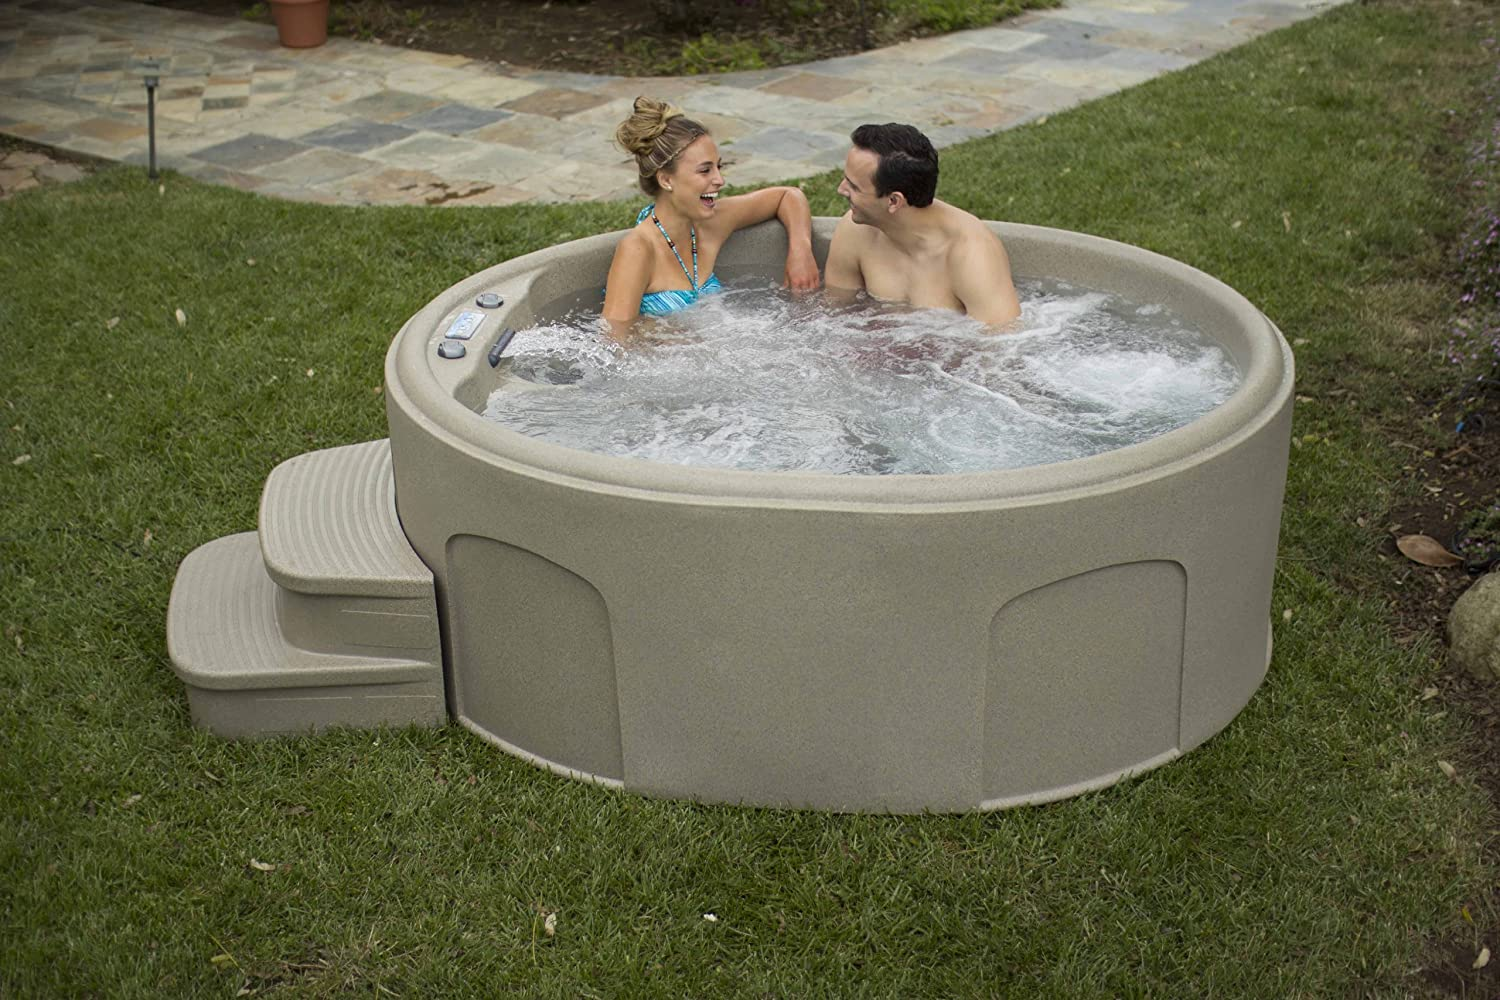 Lifesmart Rock Solid Luna Spa with Plug & Play Operation